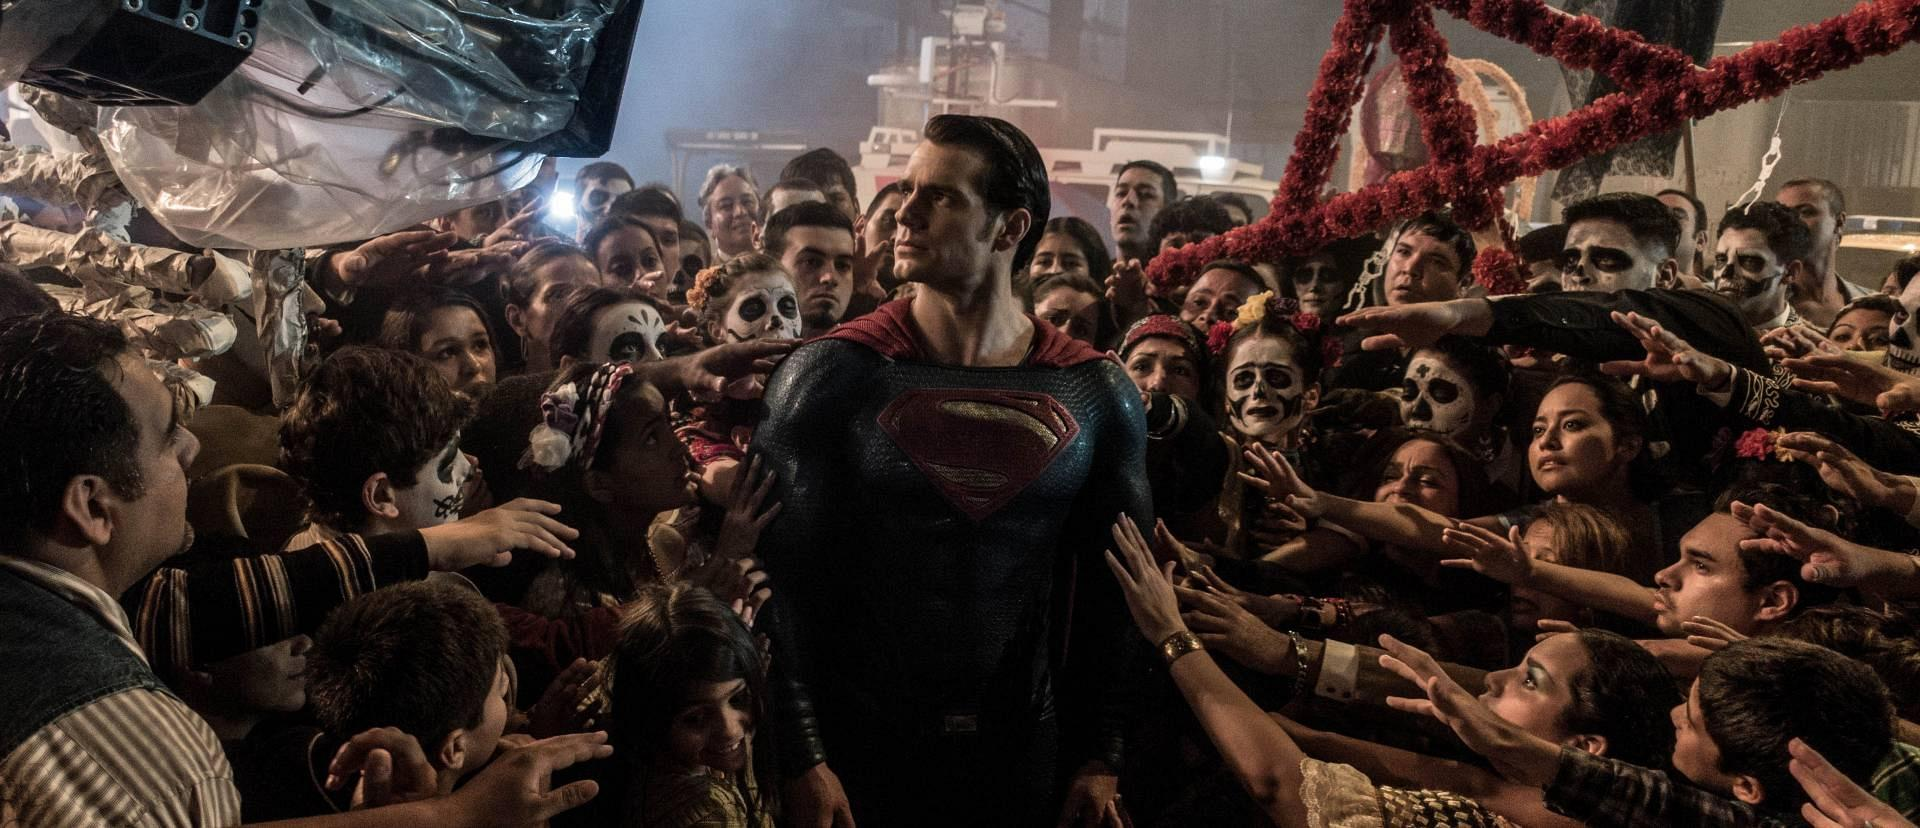 Batman v Superman a TOTAL FILM magazinban